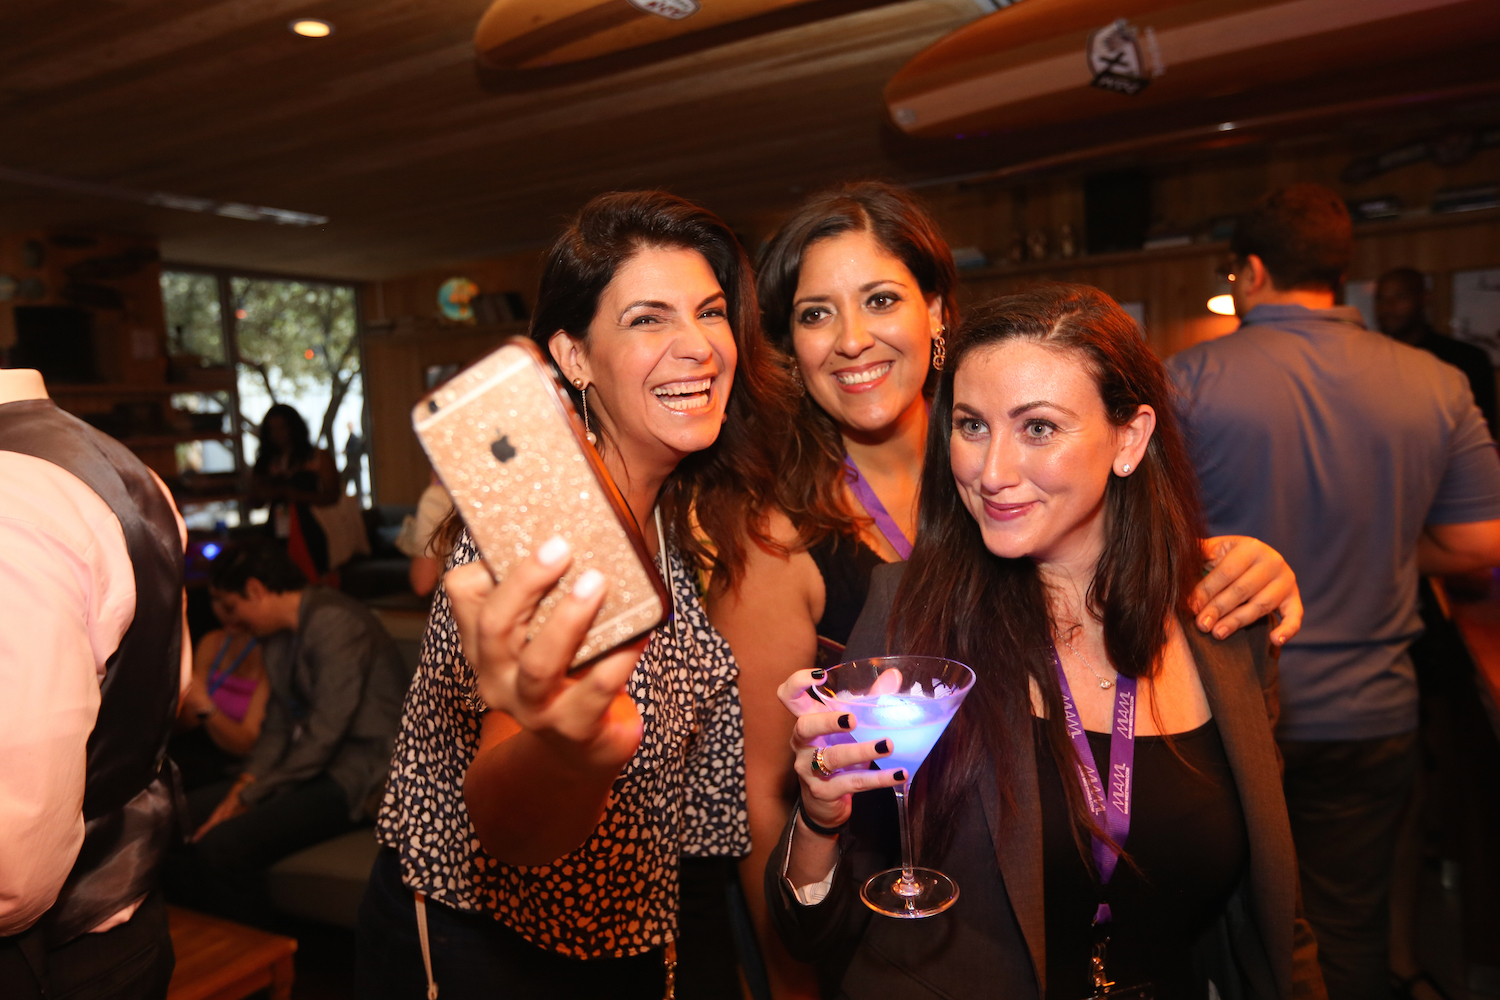 hispanicize-photos-event-miami-49